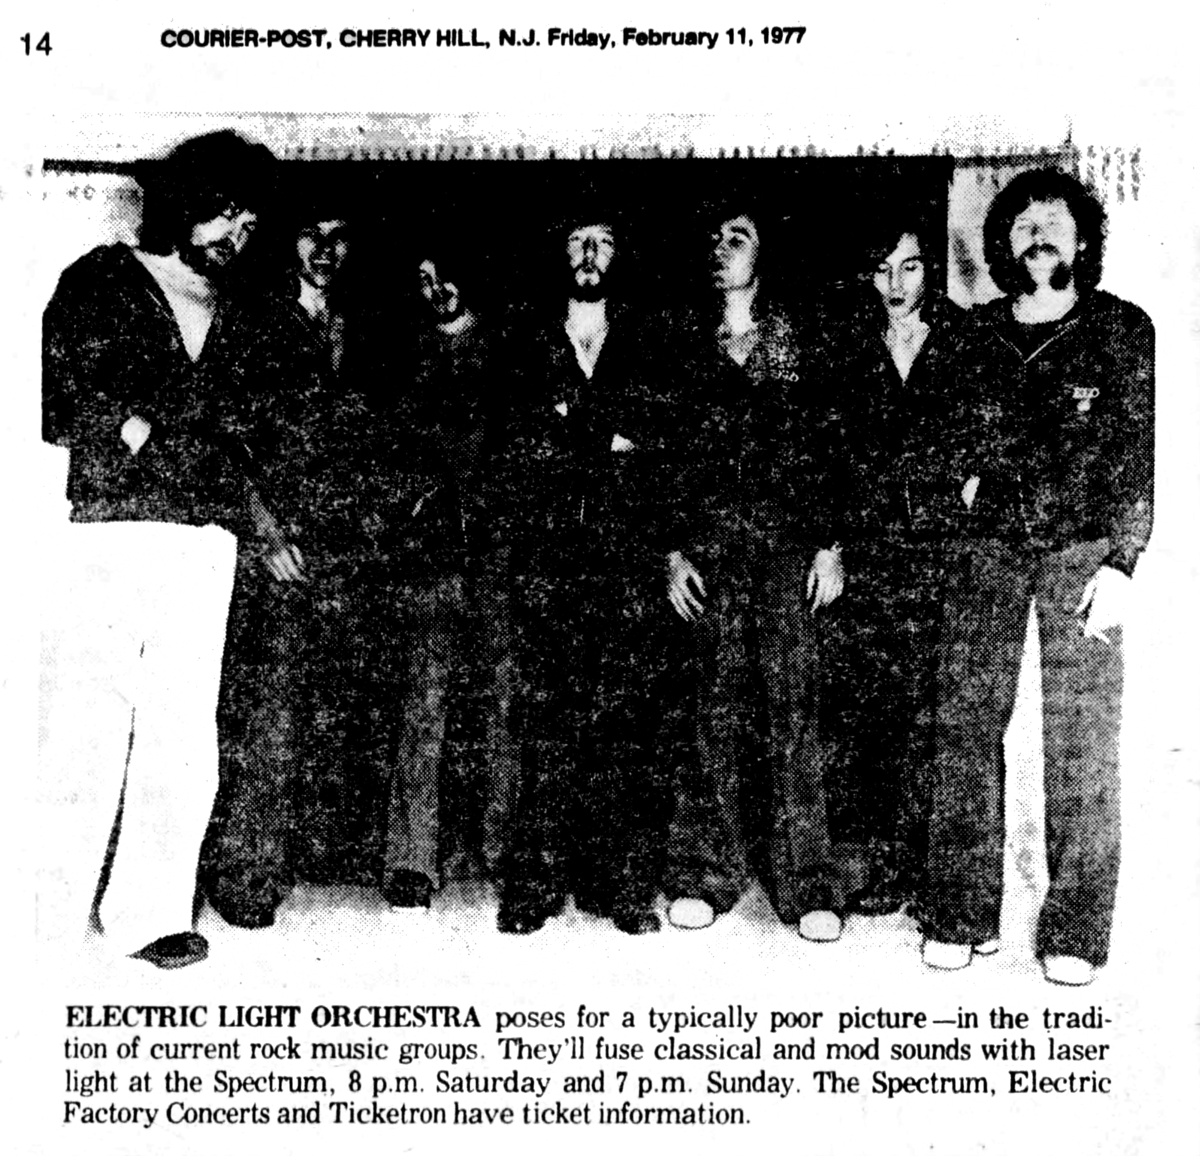 Electric Light Orchestra's Concert & Tour History